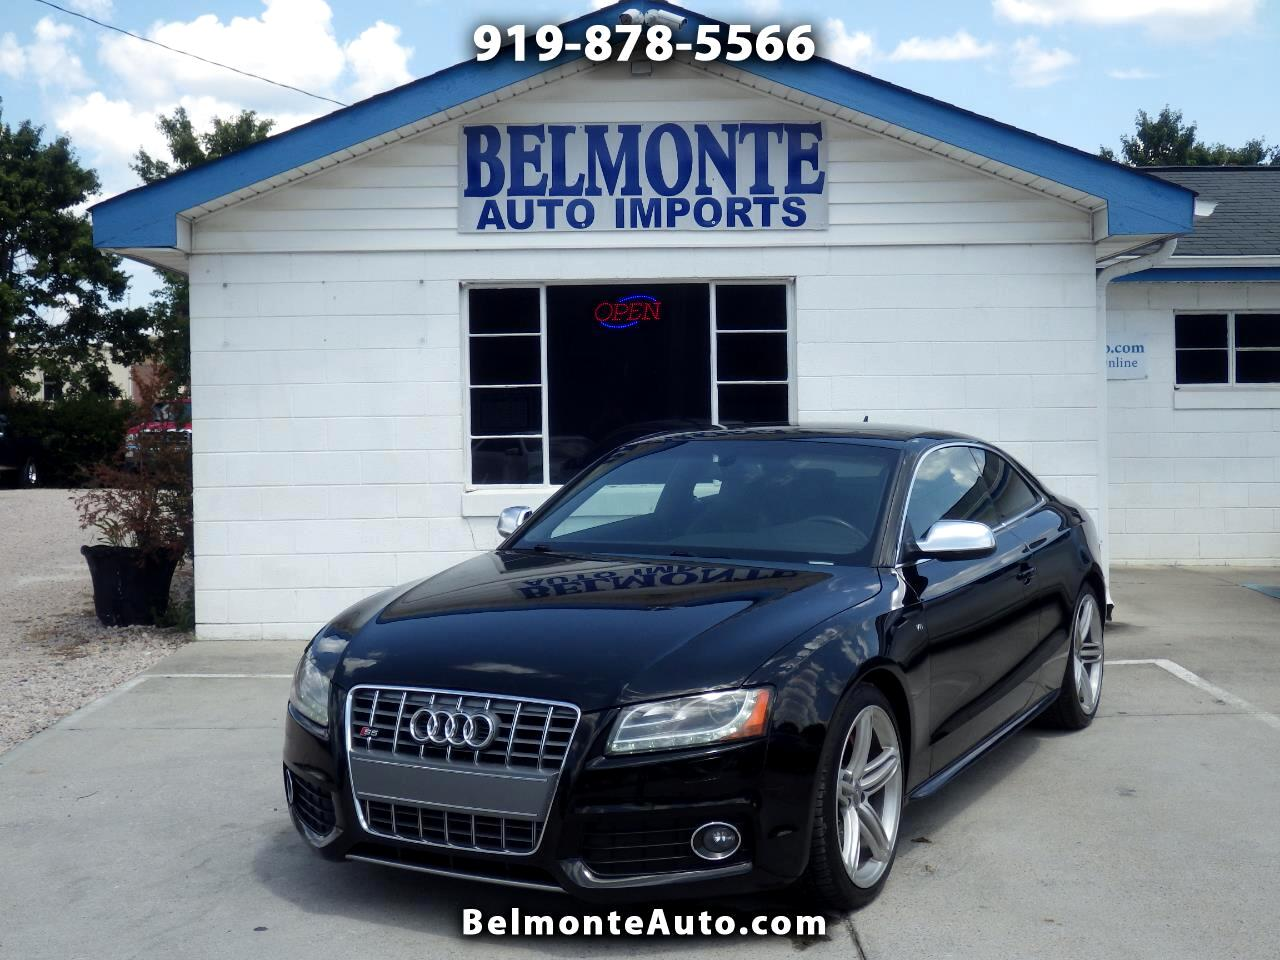 Used Cars Raleigh NC , Used Cars For Sale Raleigh NC, Used